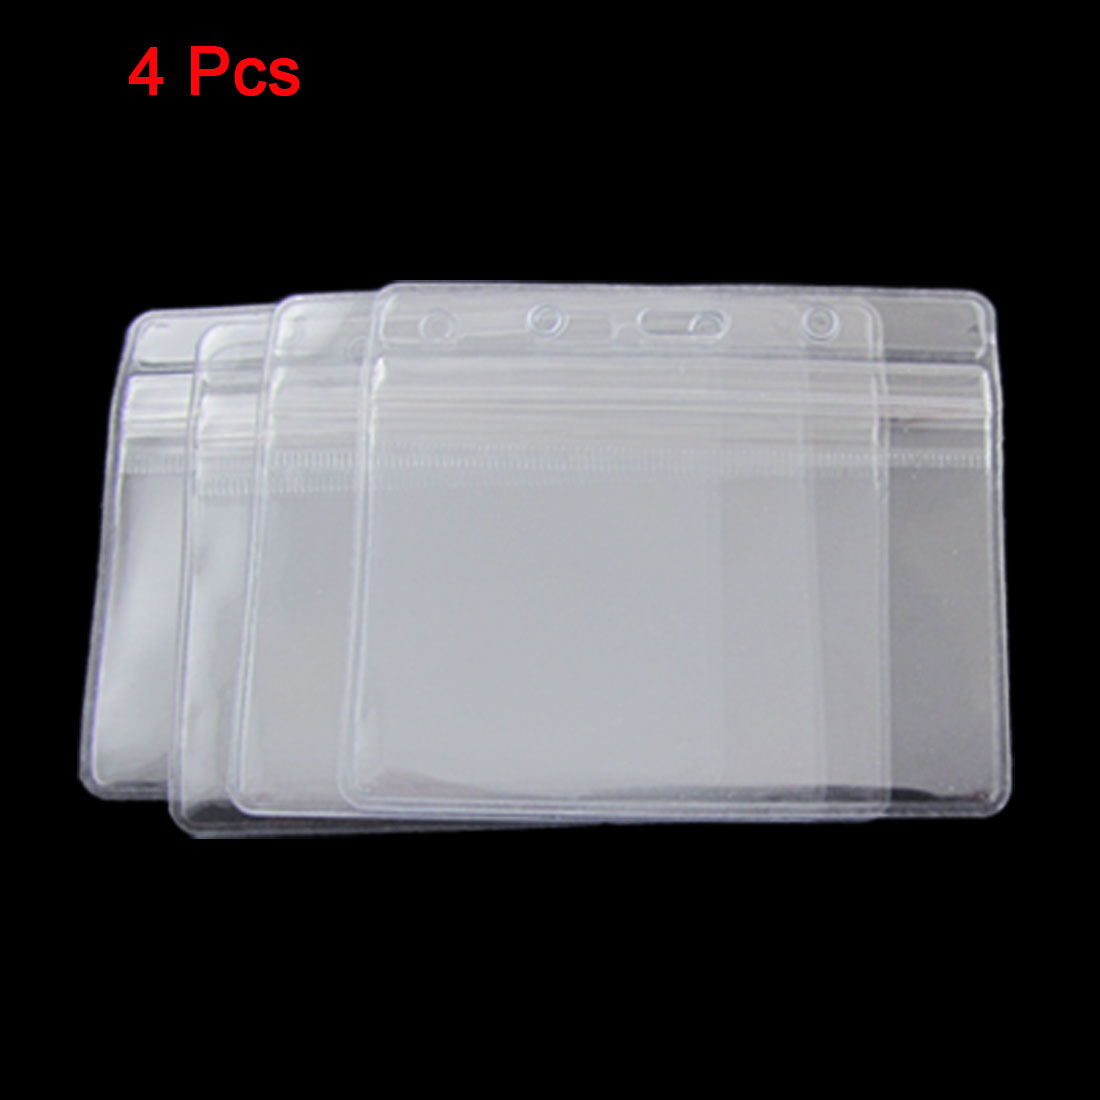 4 Pcs Clear PVC Working Horizontal ID Badge Card Holders